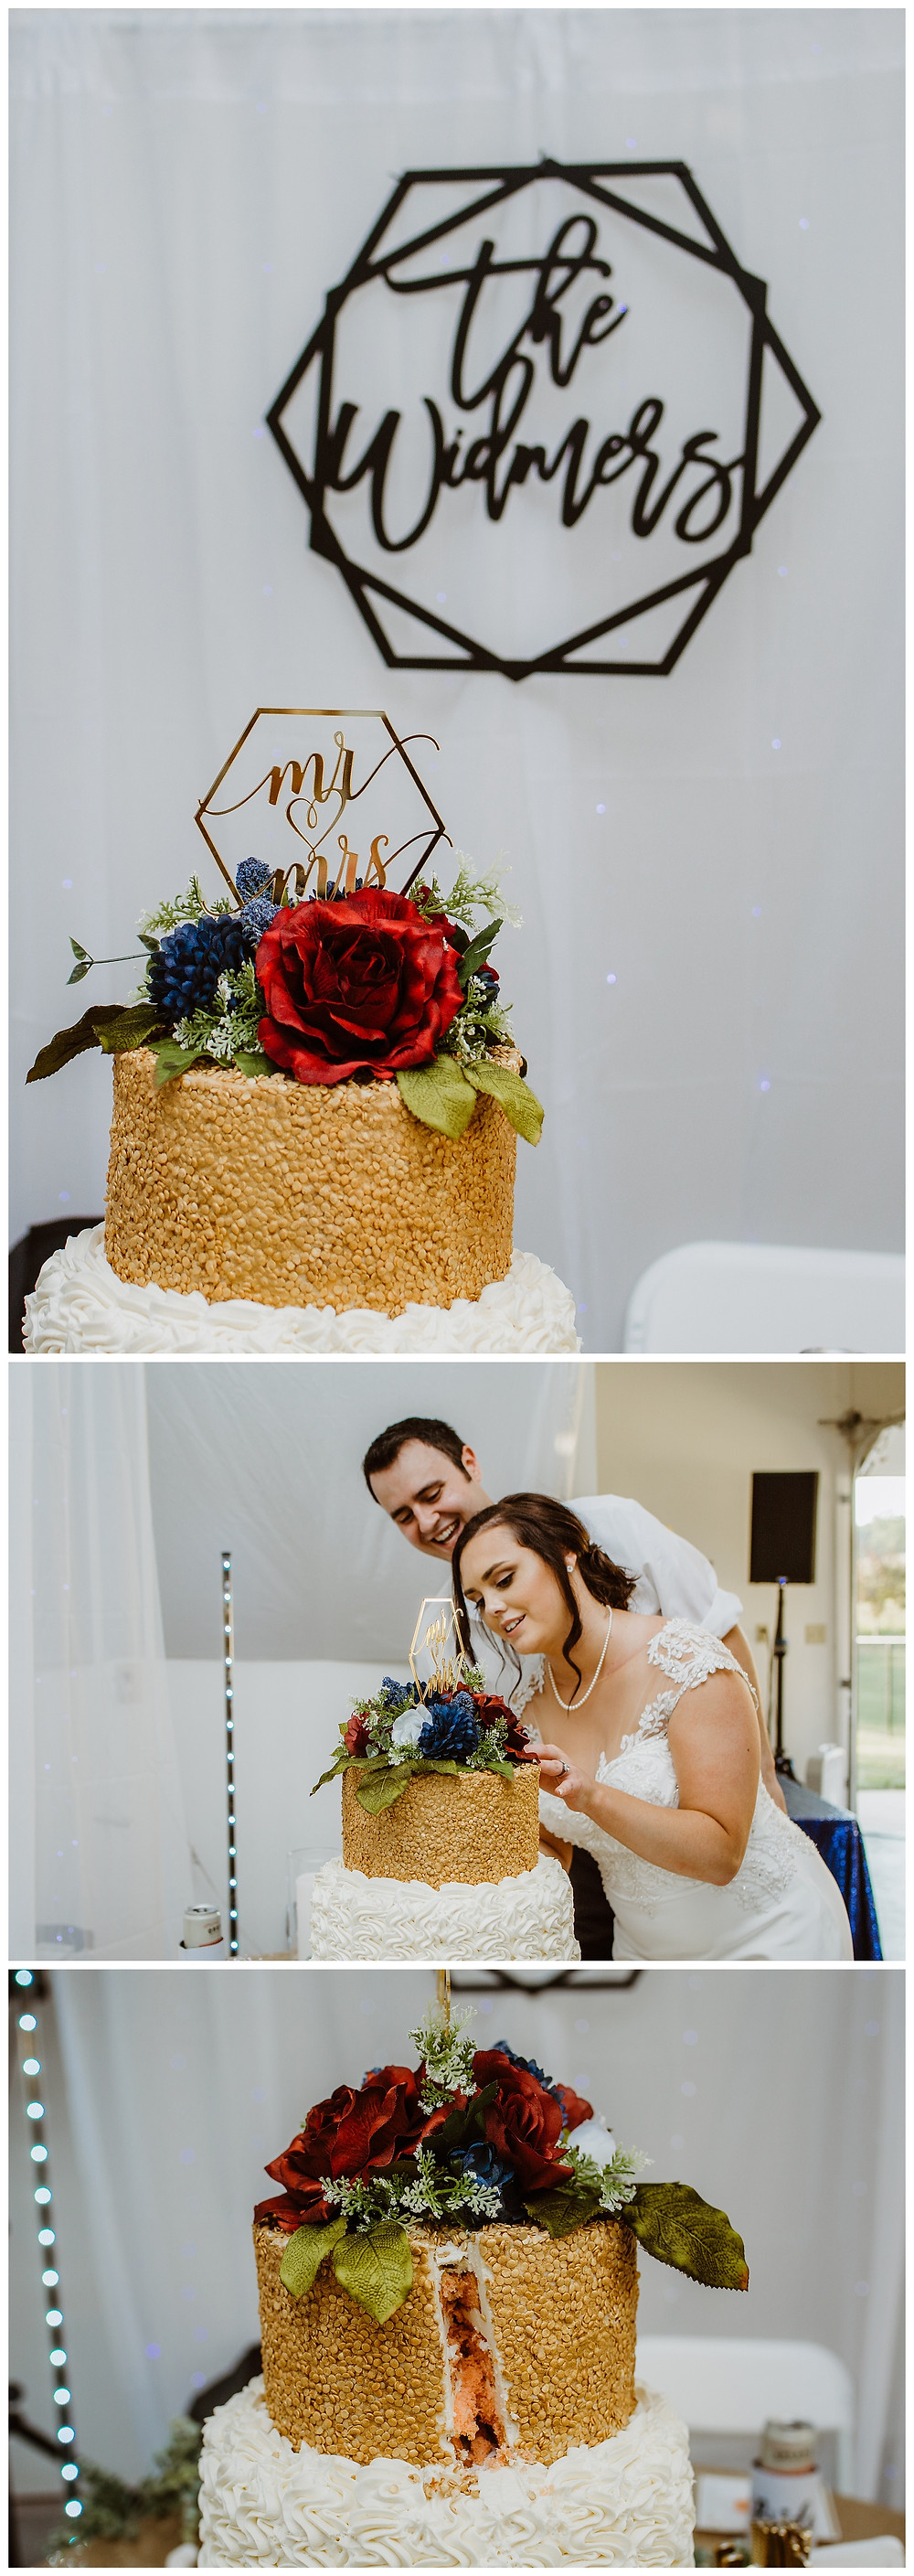 Intimate Iowa Wedding reception cake